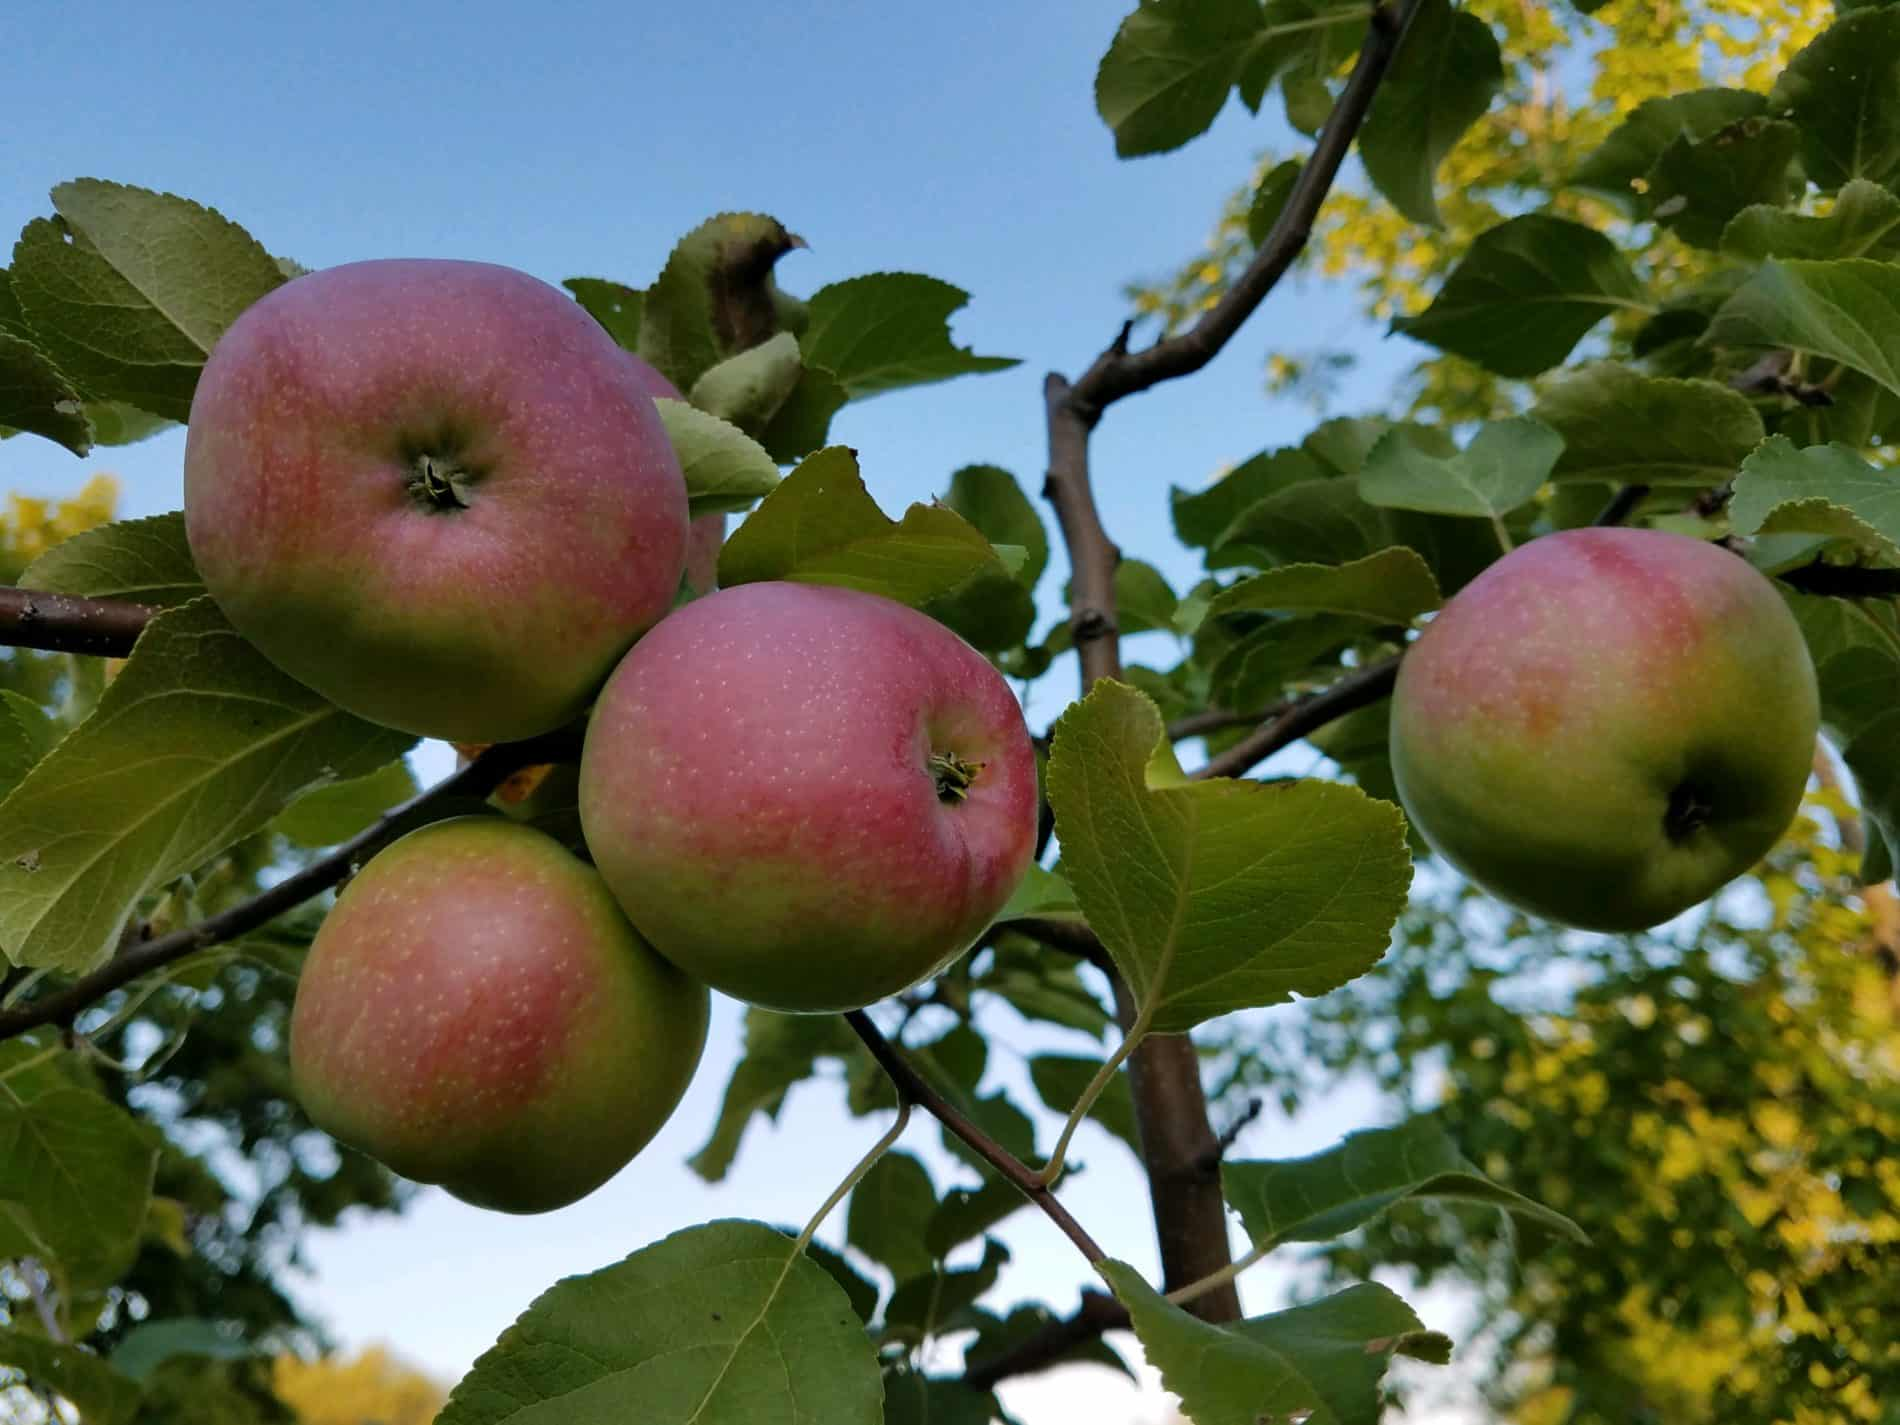 red and green apples on apple tree with blue sky background